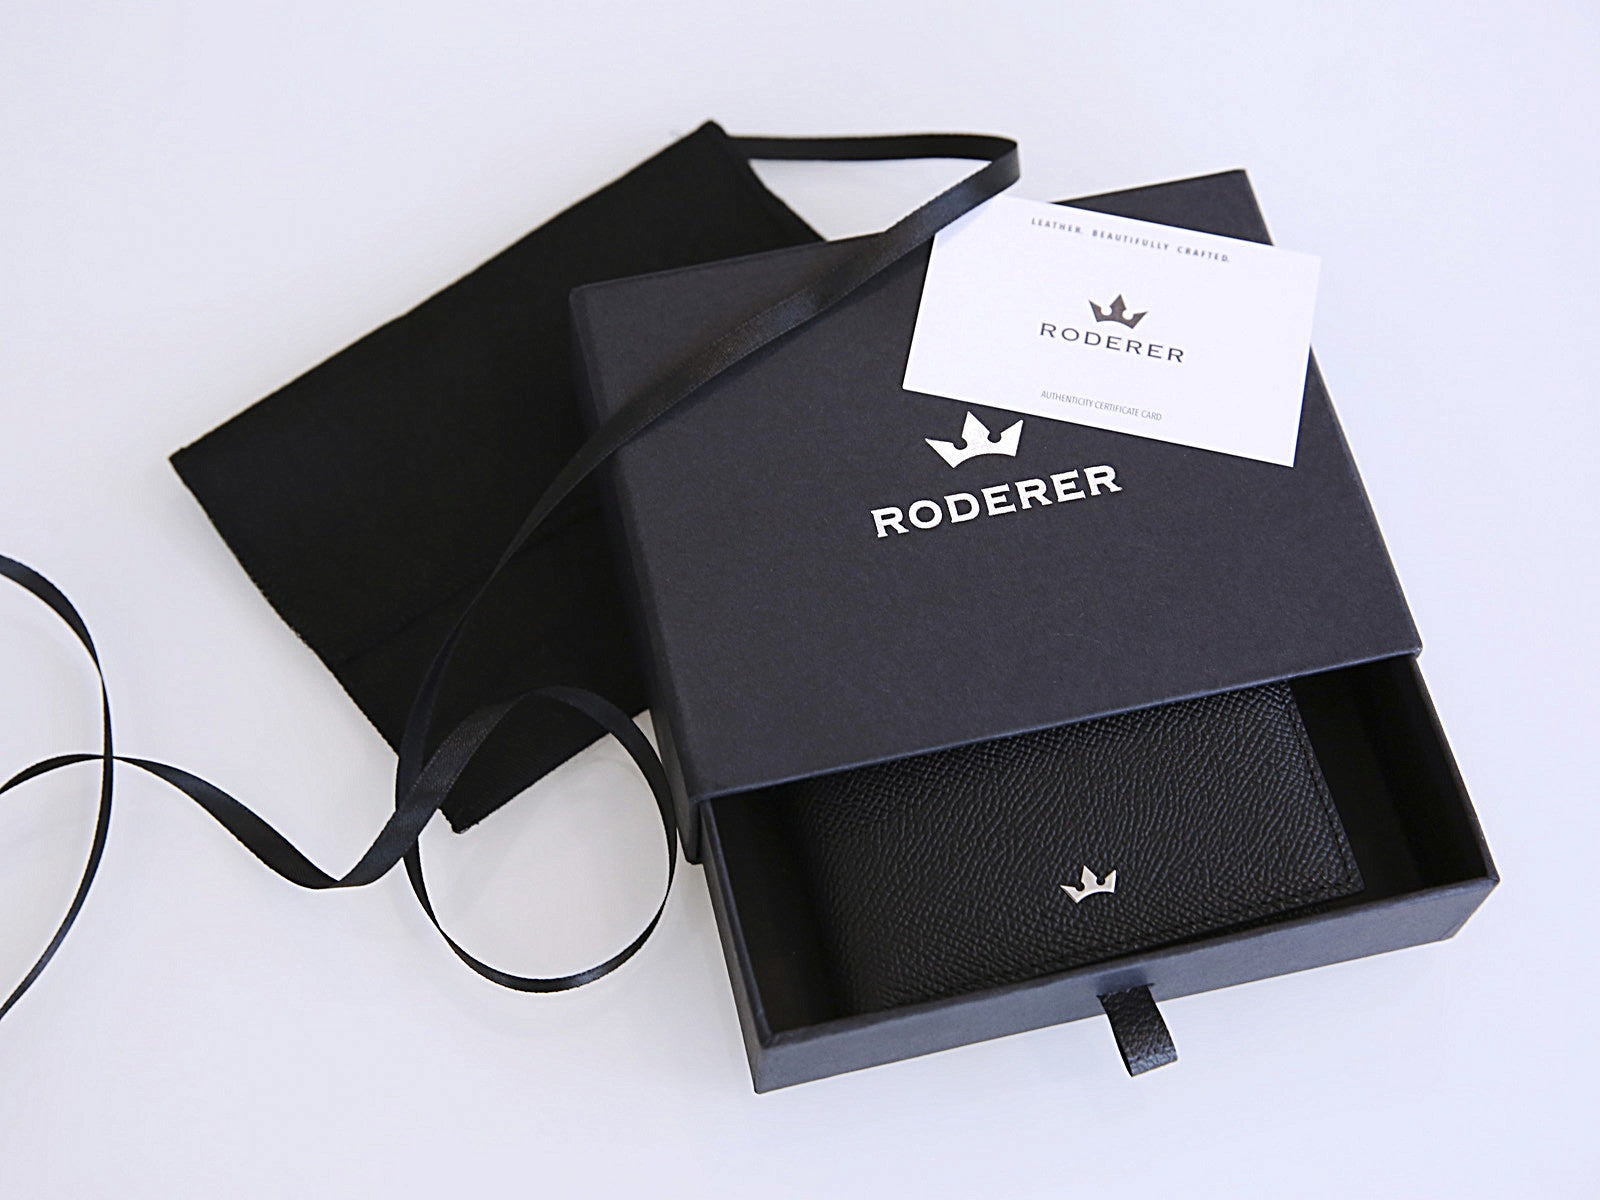 Roderer Card Holder 4 Card Venezia Black Packaging